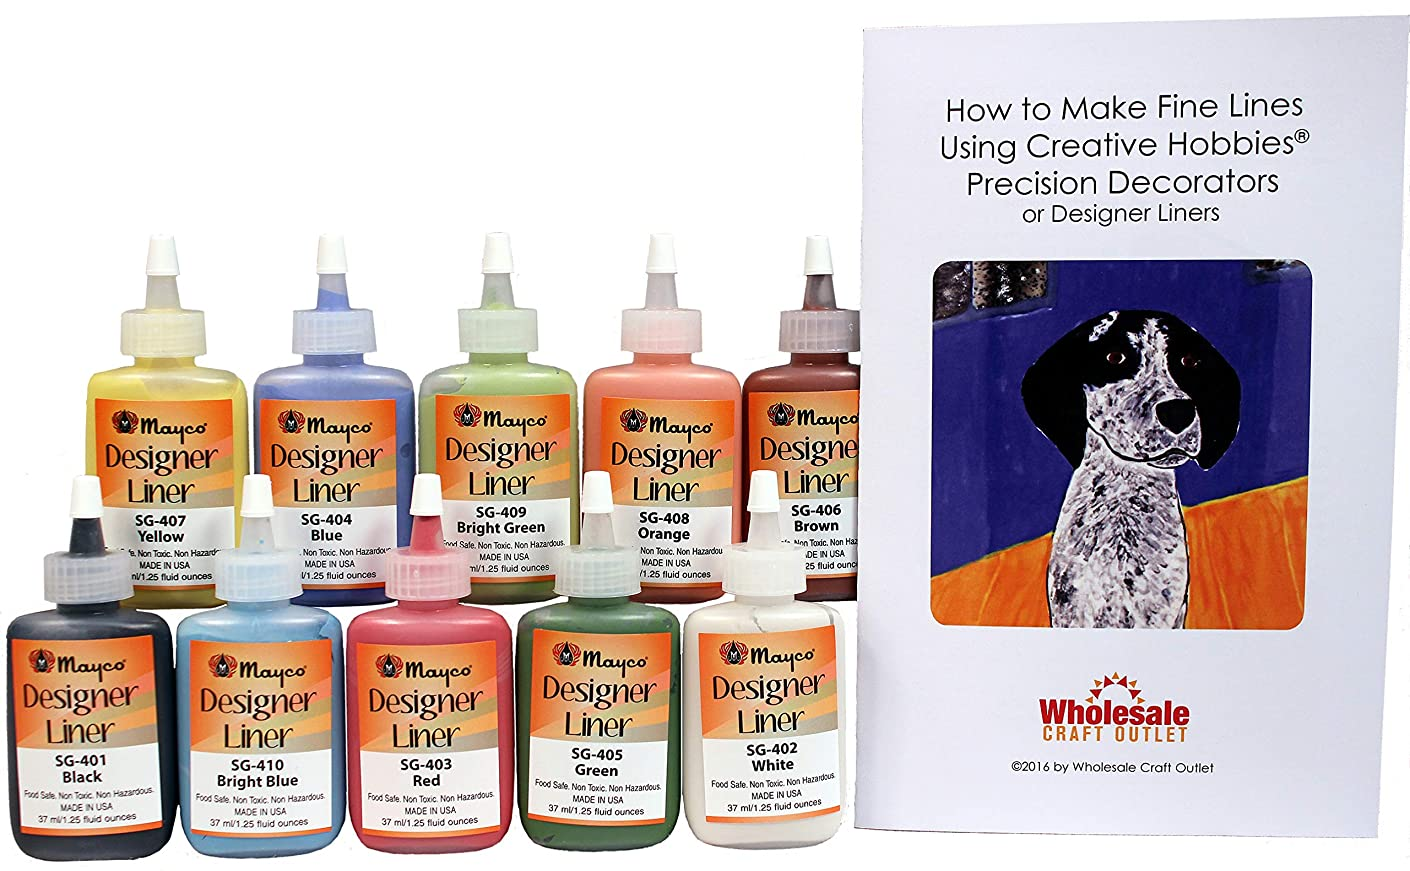 Mayco Designer Liner Ceramic Glaze Writers - 1.25 Ounce each, Kit of All 10 Colors plus Free Instructional Booklet